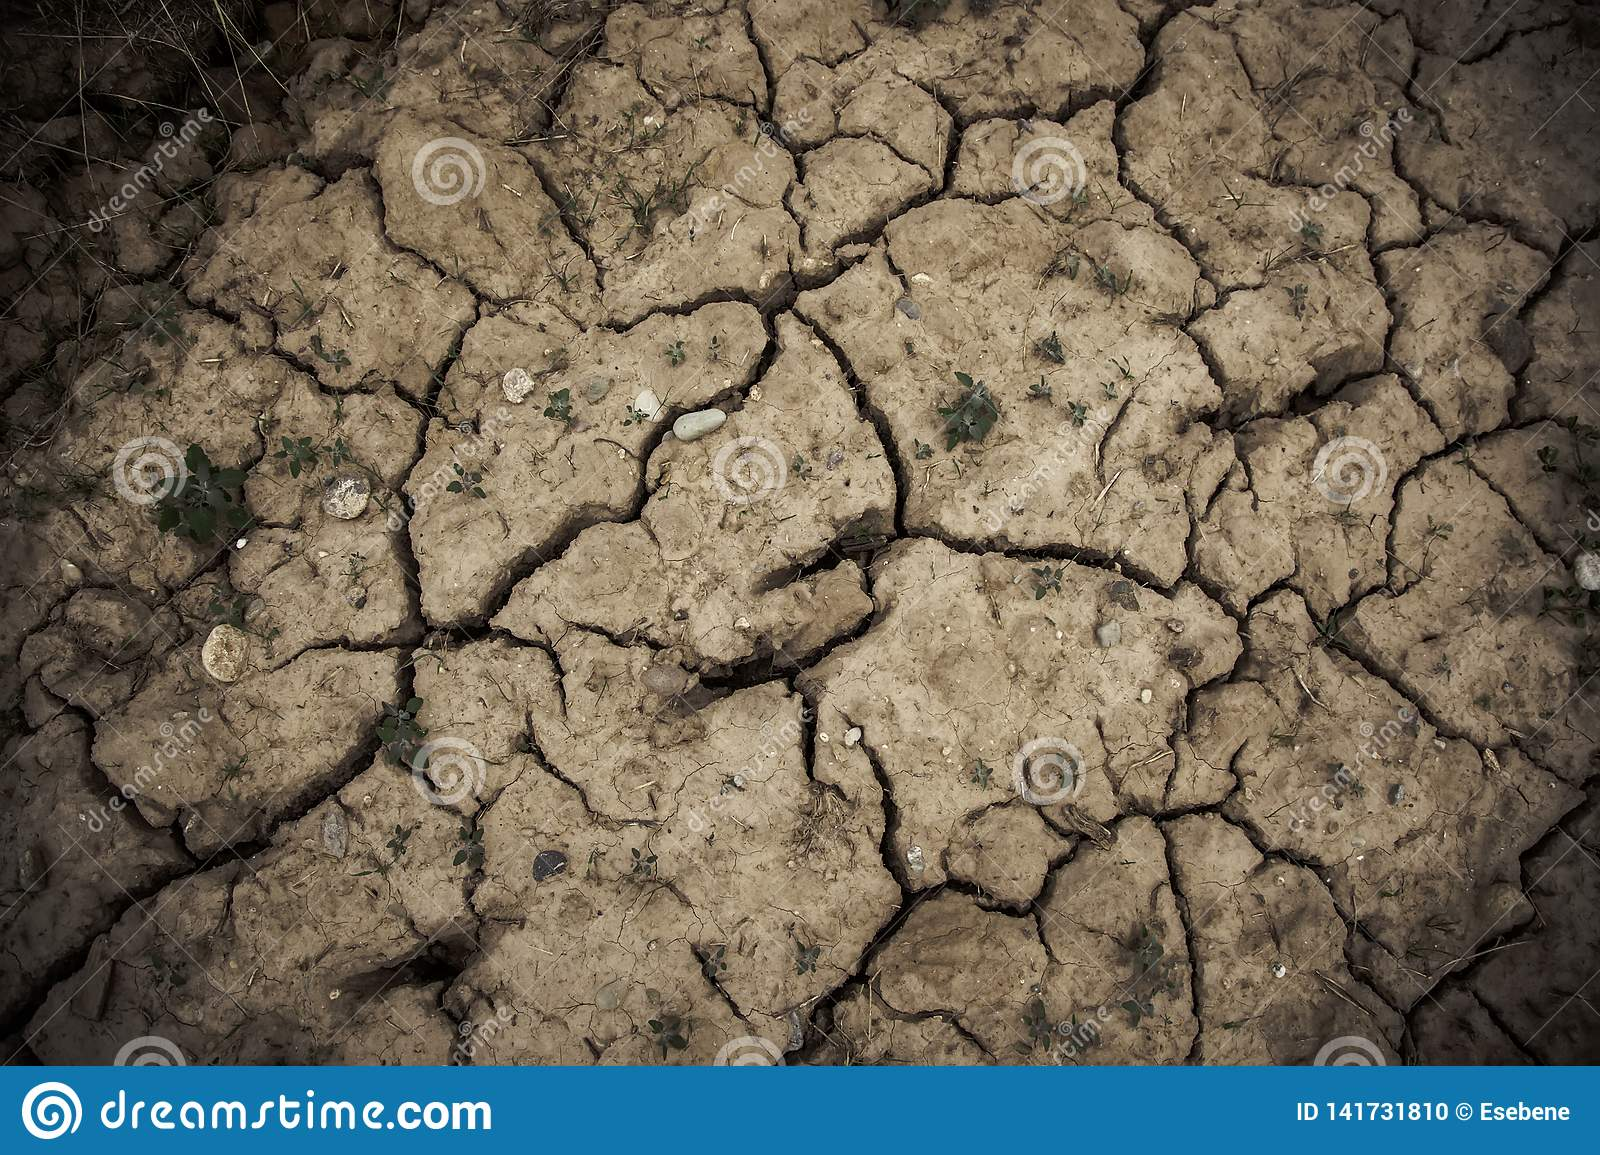 Dry and cracked soil